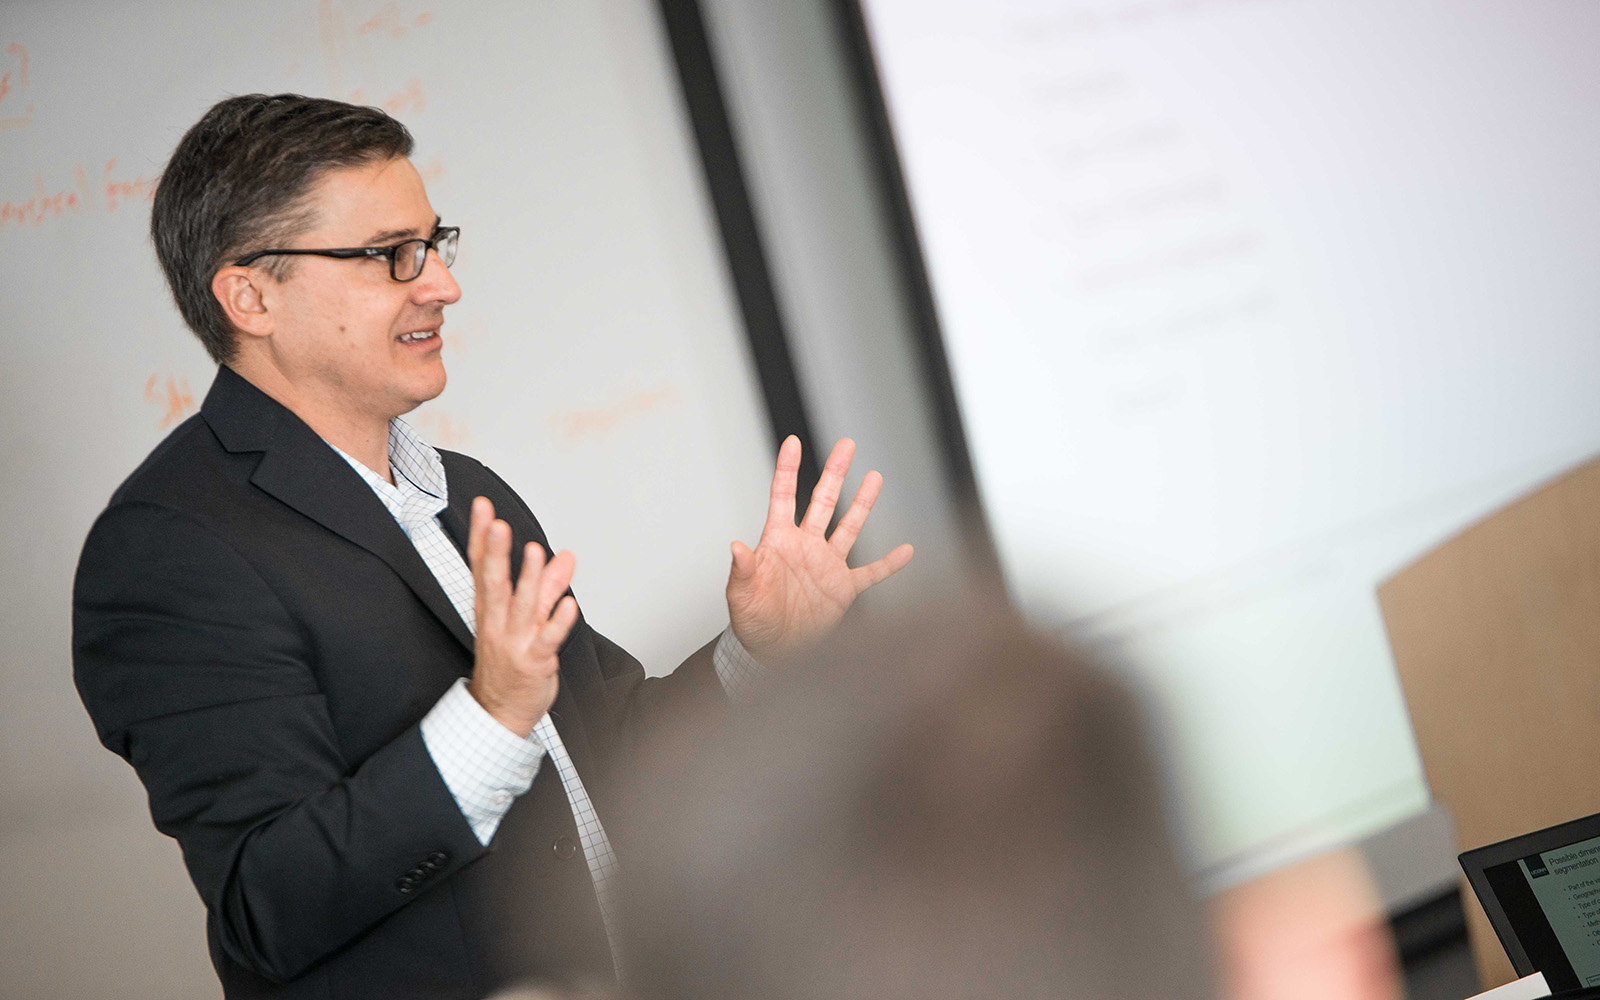 Professor Greg Reilly, teaching an Executive MBA course in Hartford, Conn. (Nathan Oldham/UConn School of Business)